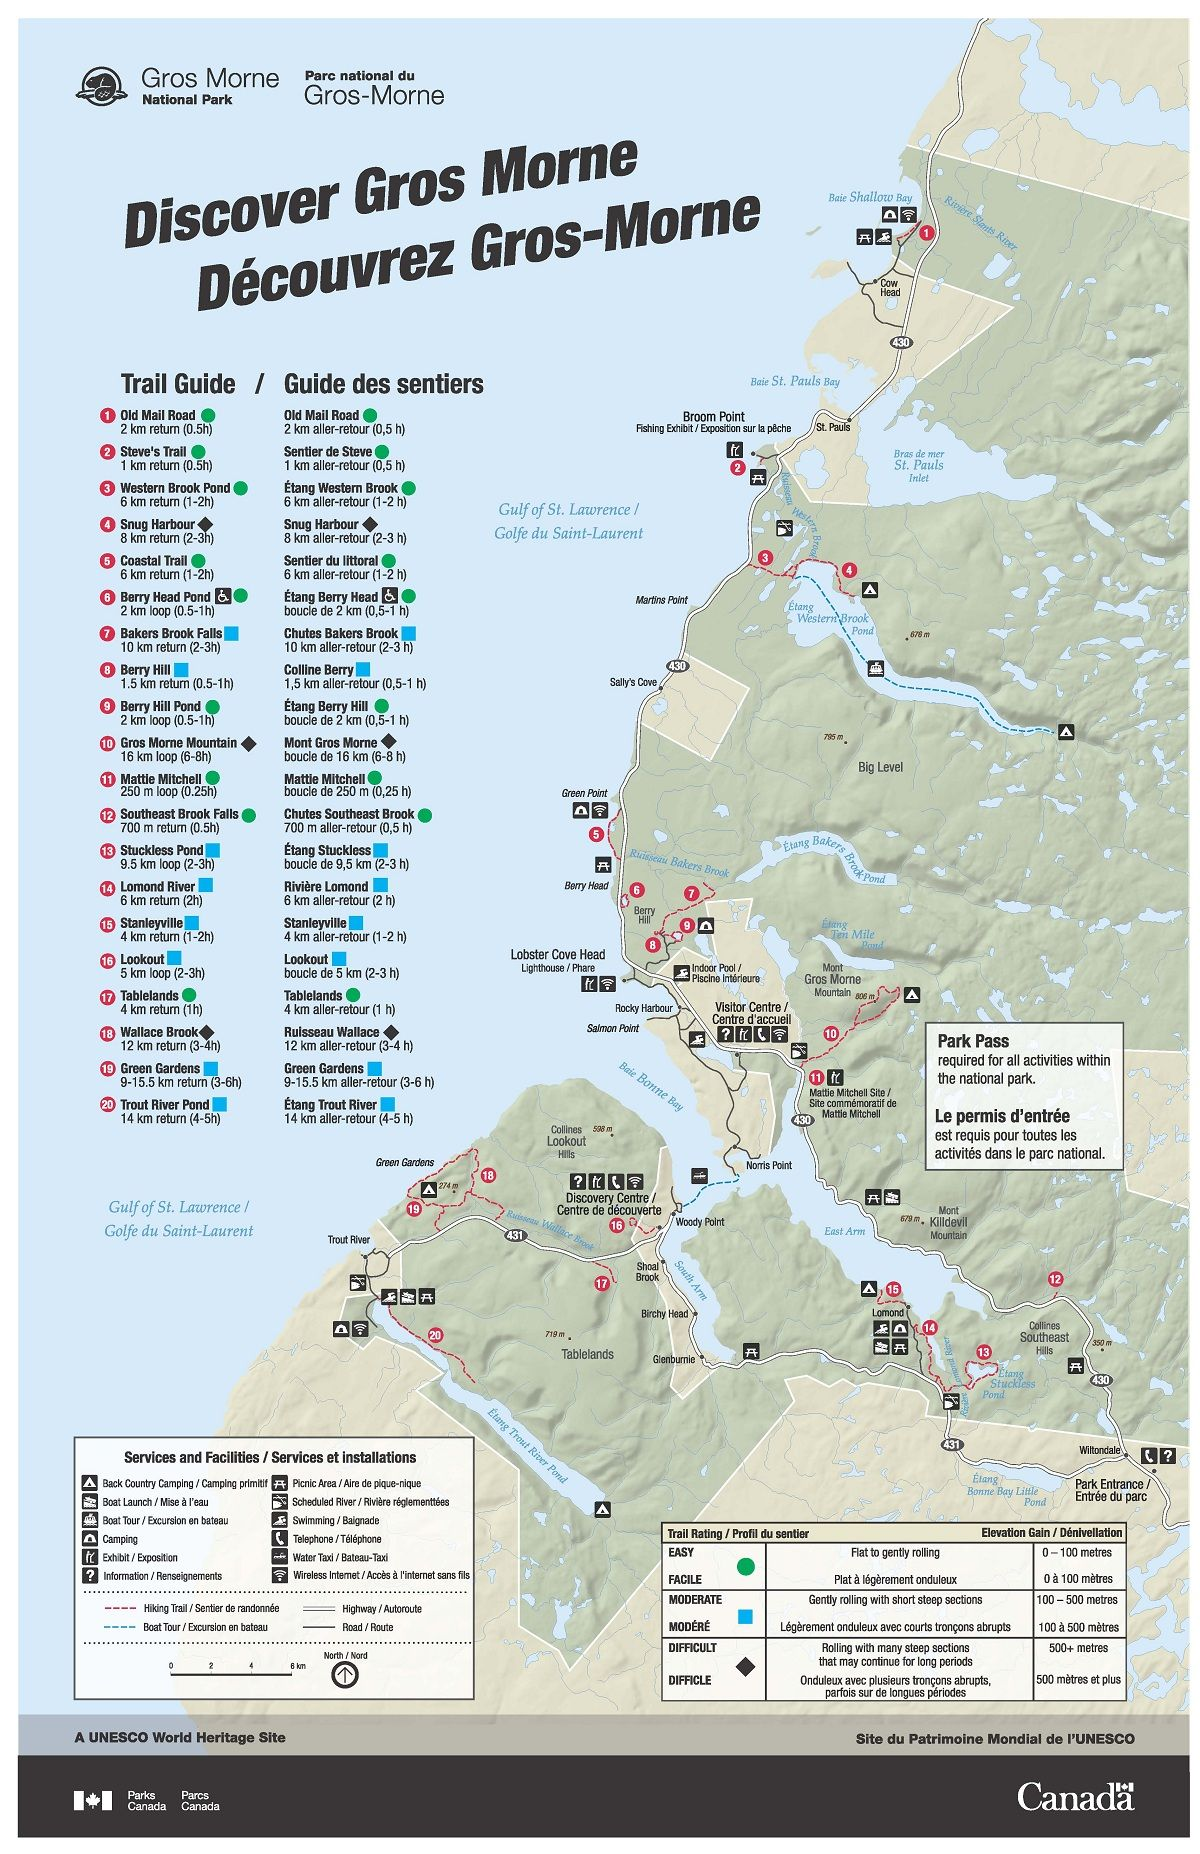 Parks Canada Gros Morne National Park Map Canada Pinterest